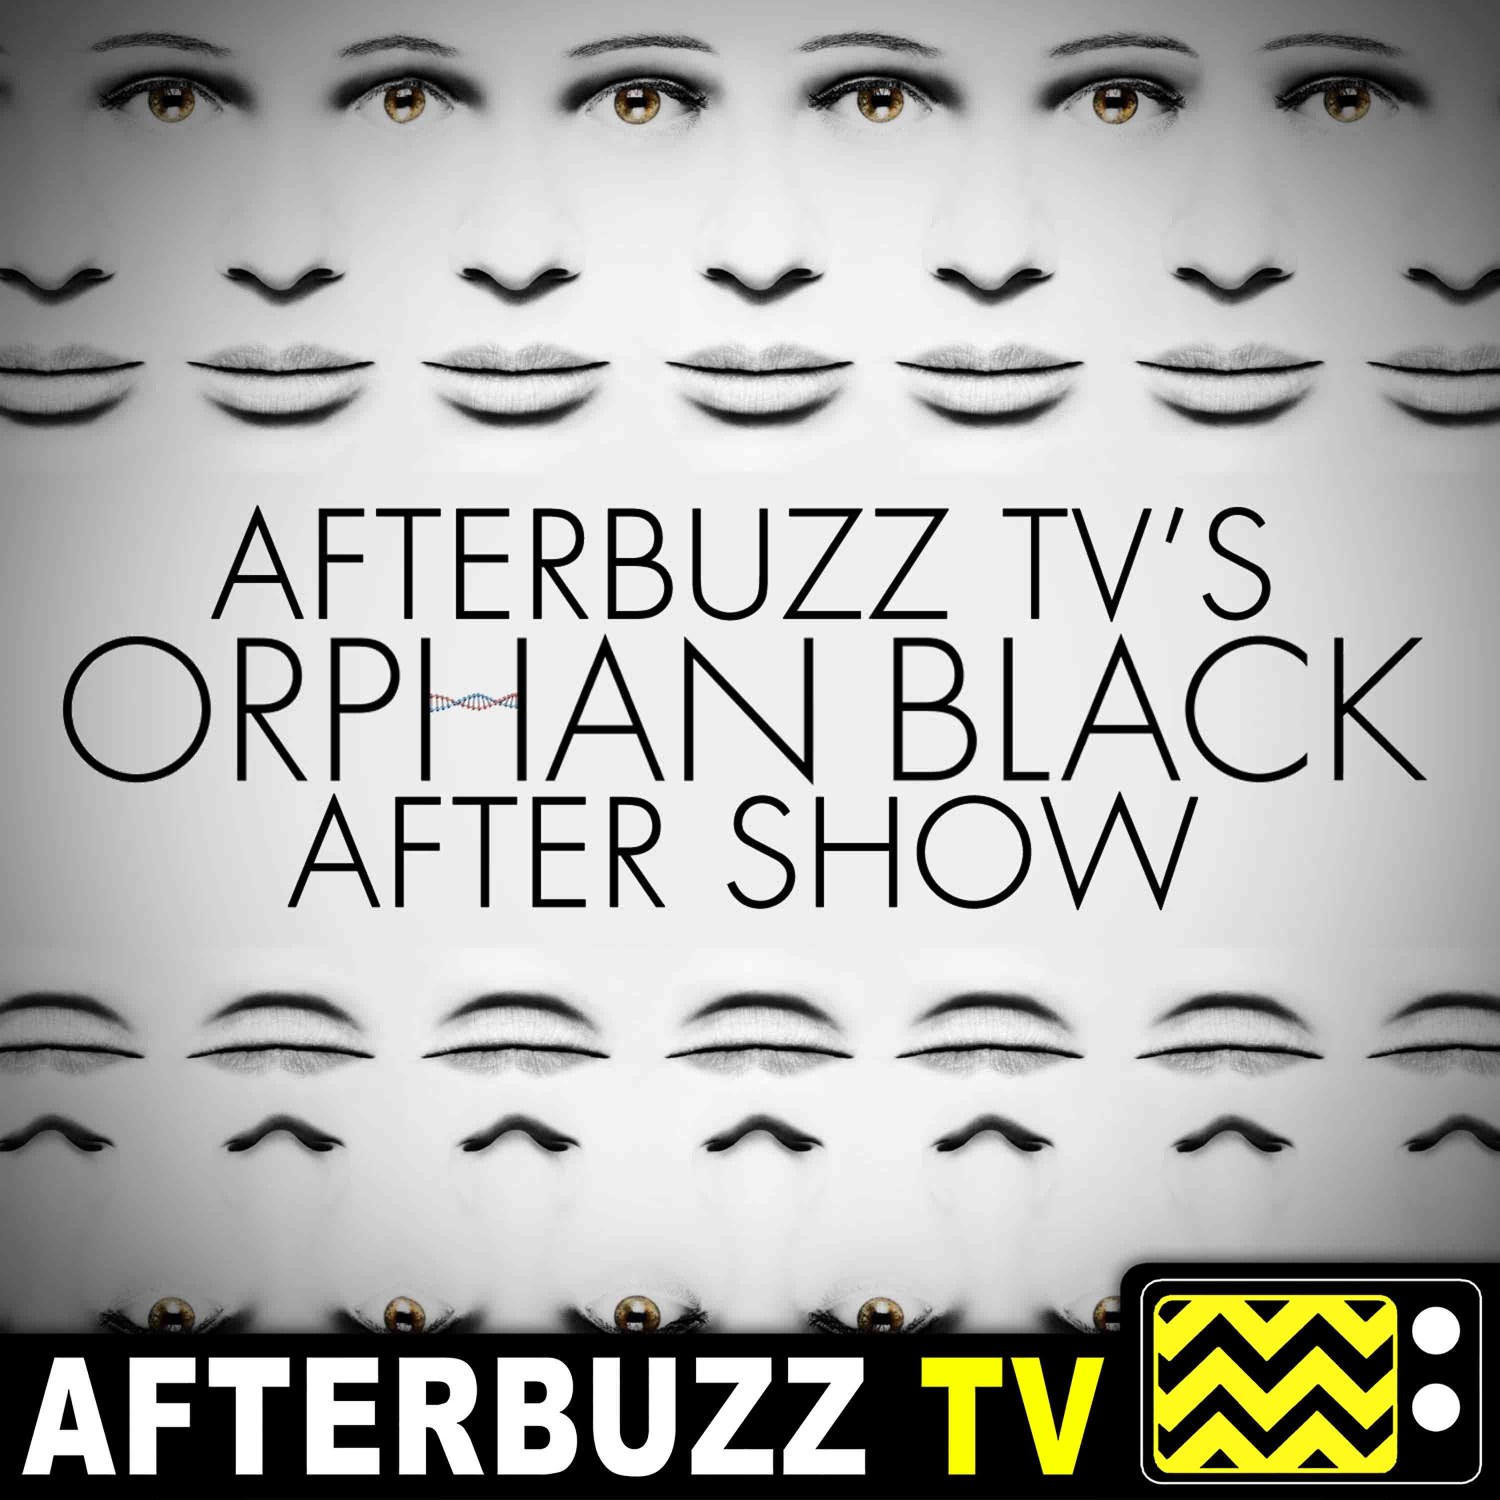 Orphan Black: The Next Chapter After Show - AfterBuzz TV